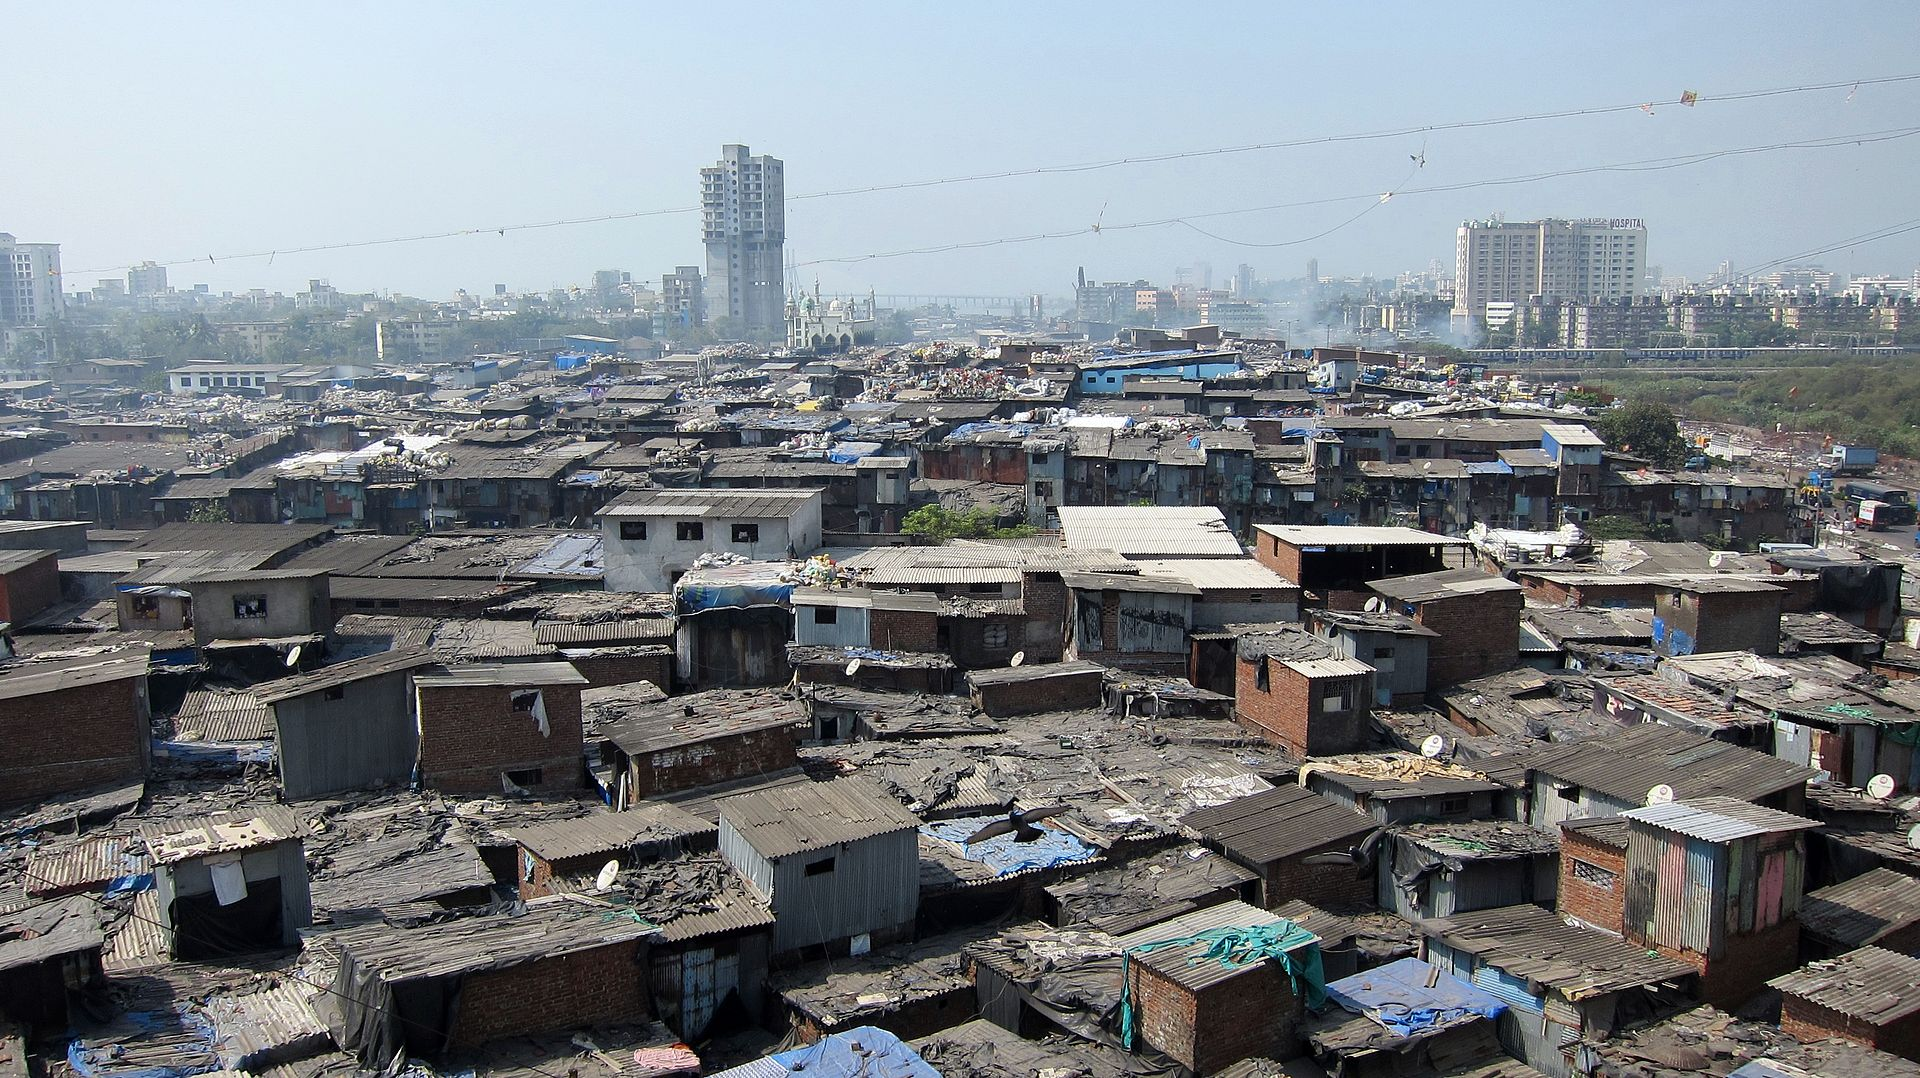 Housing & Slums both are under threat of COVID-19